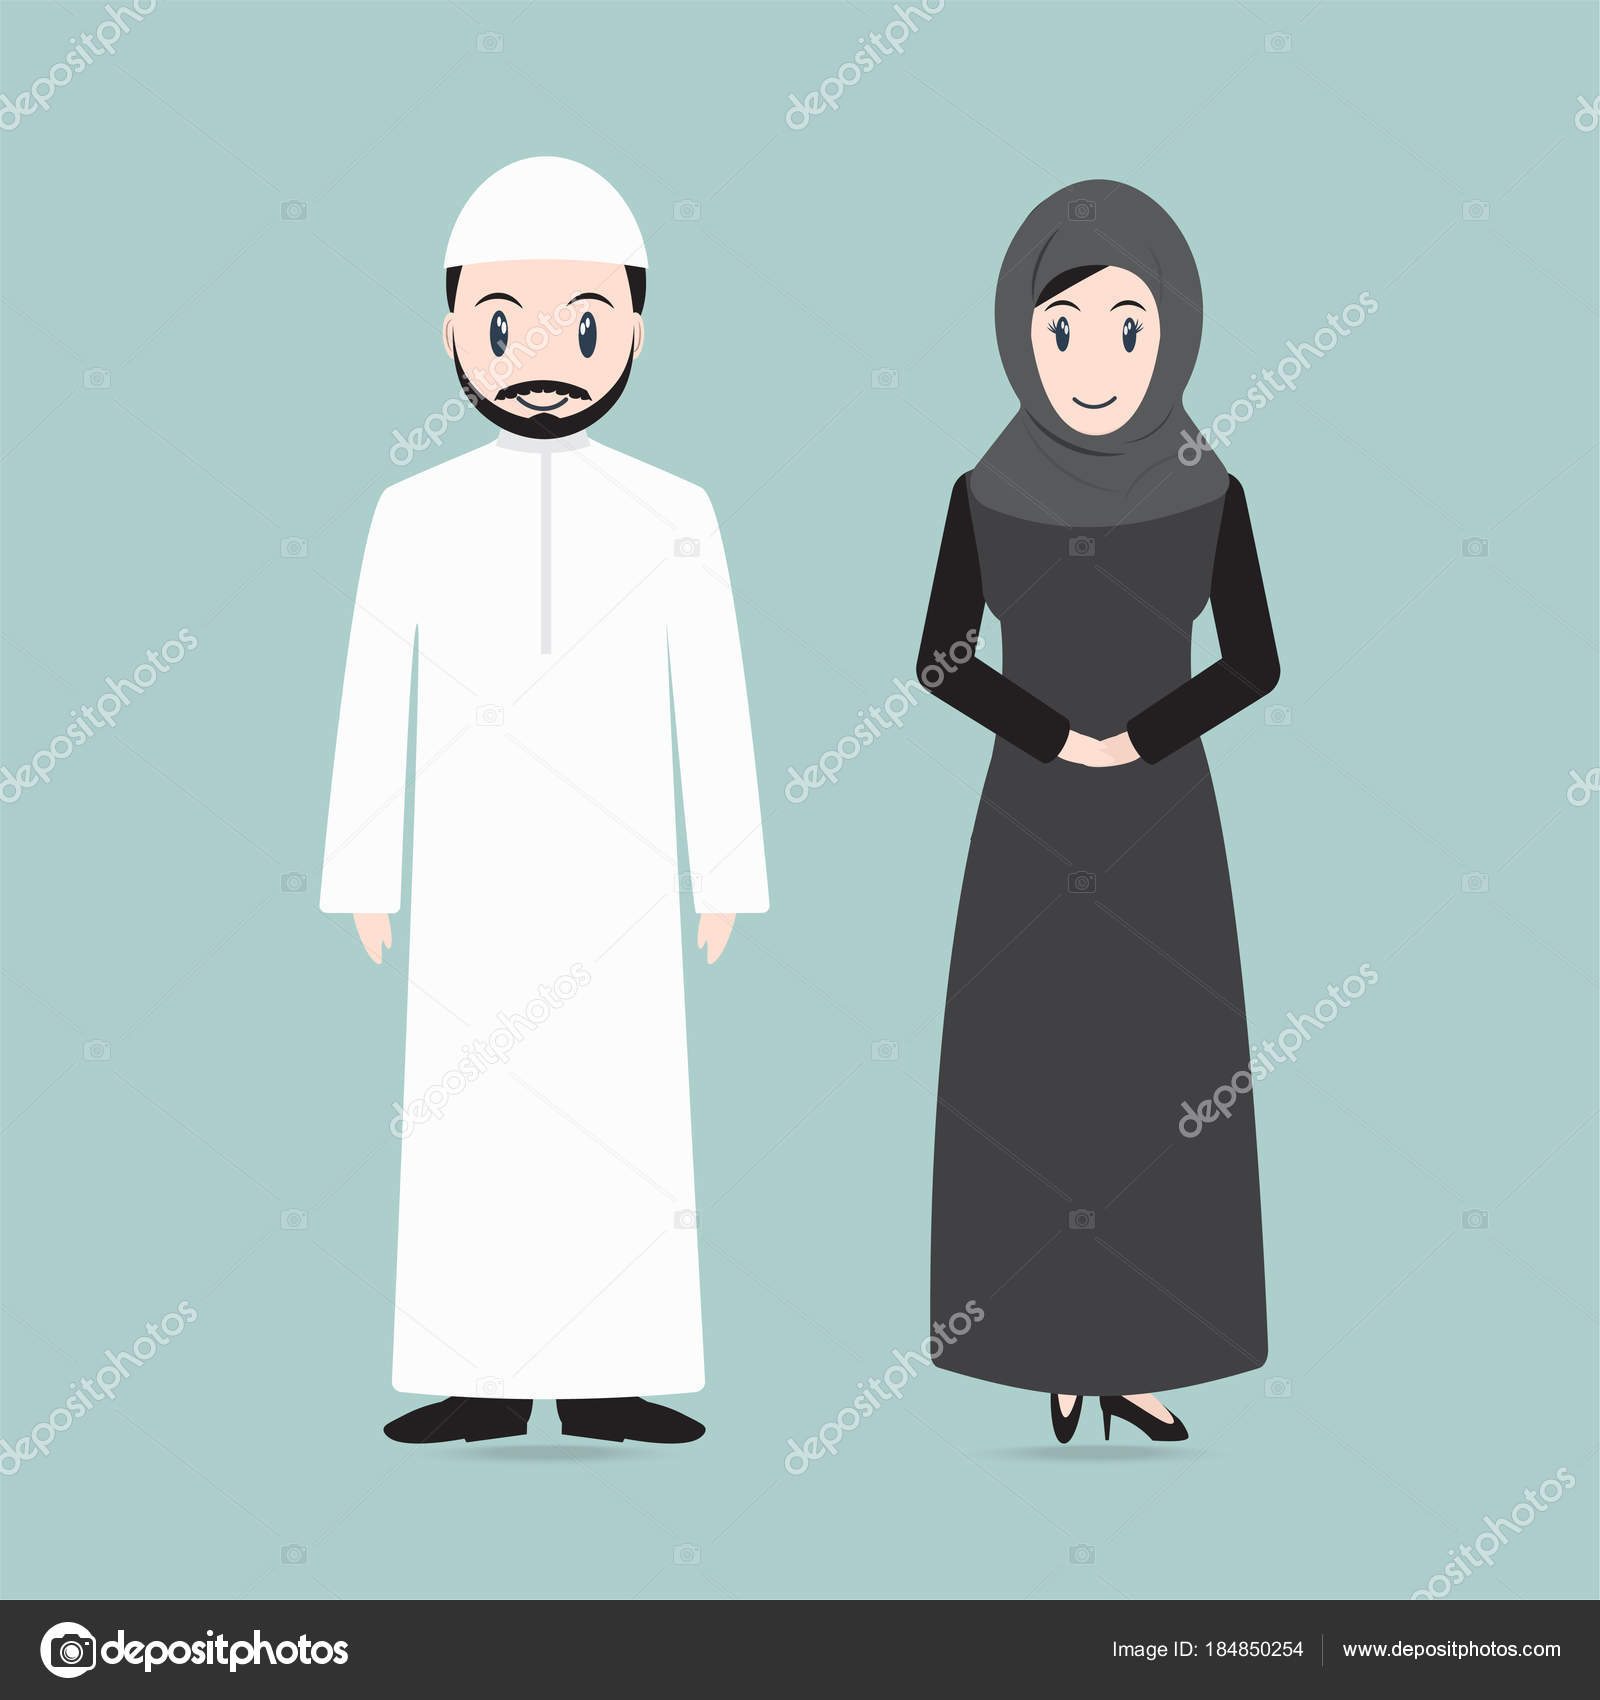 Non muslim woman dating muslim man